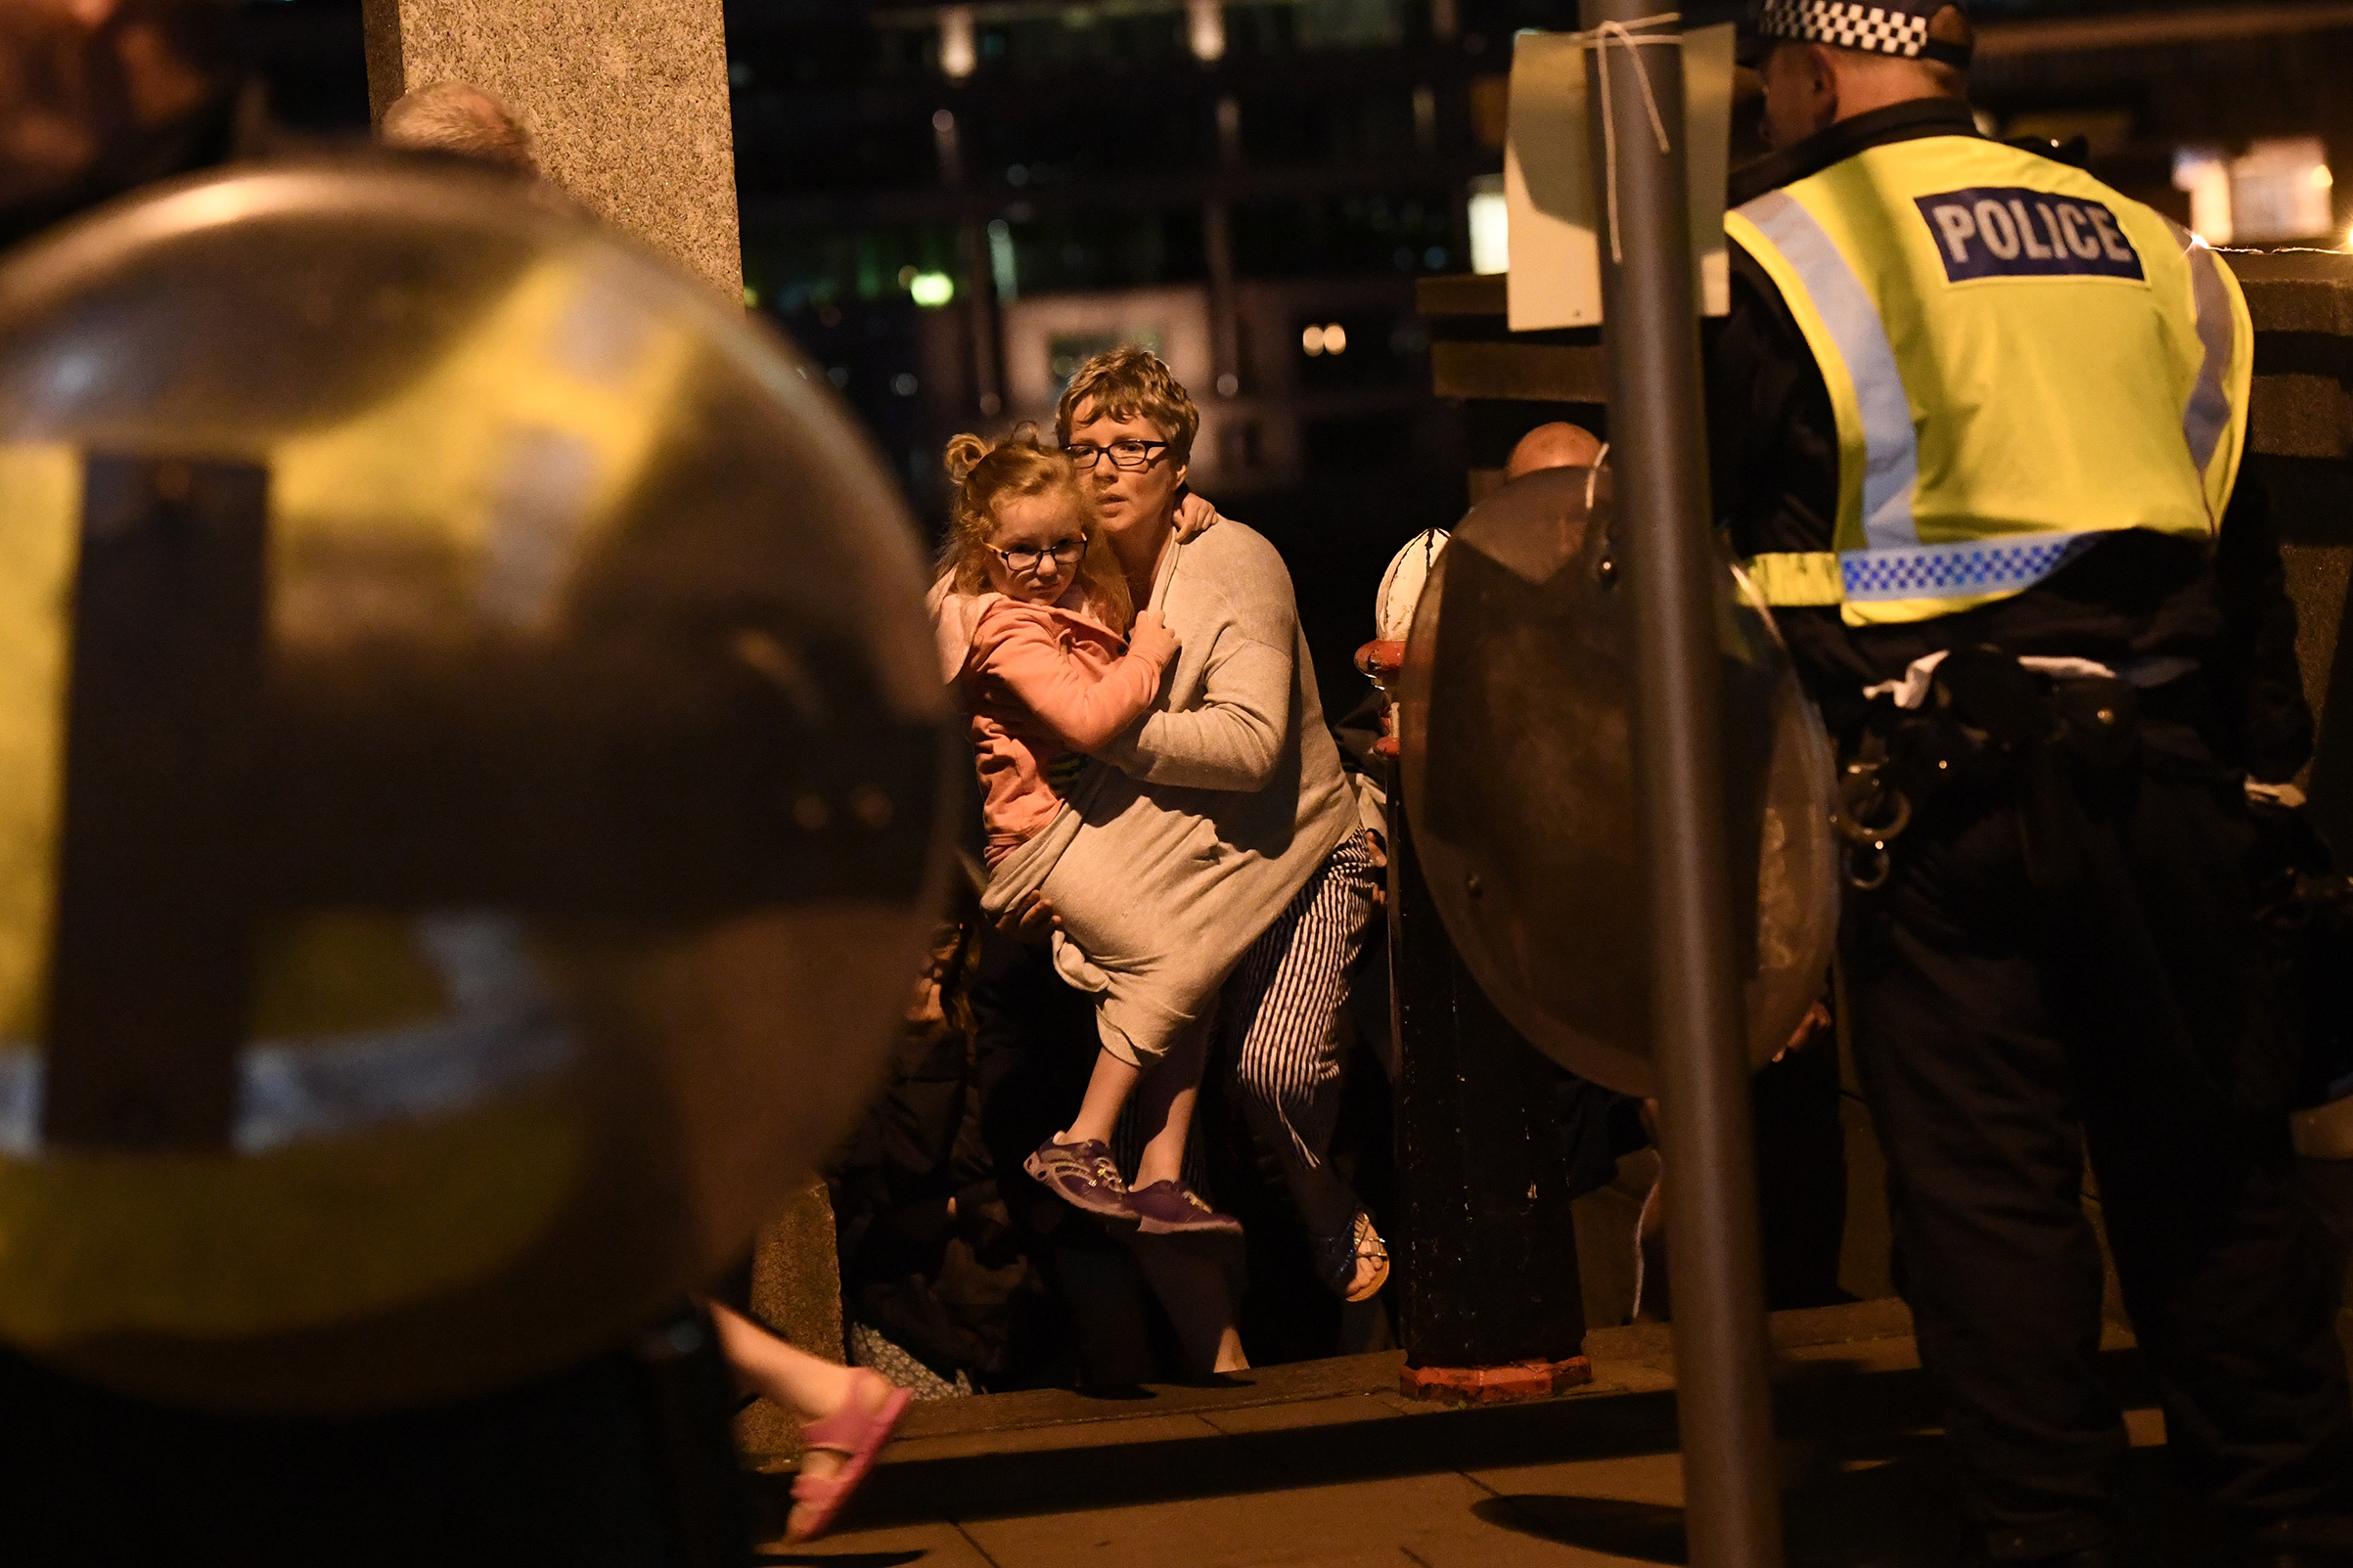 A woman and young girl are lead to safety on Southwark Bridge, away from London Bridge, after an attack on June 4, 2017.